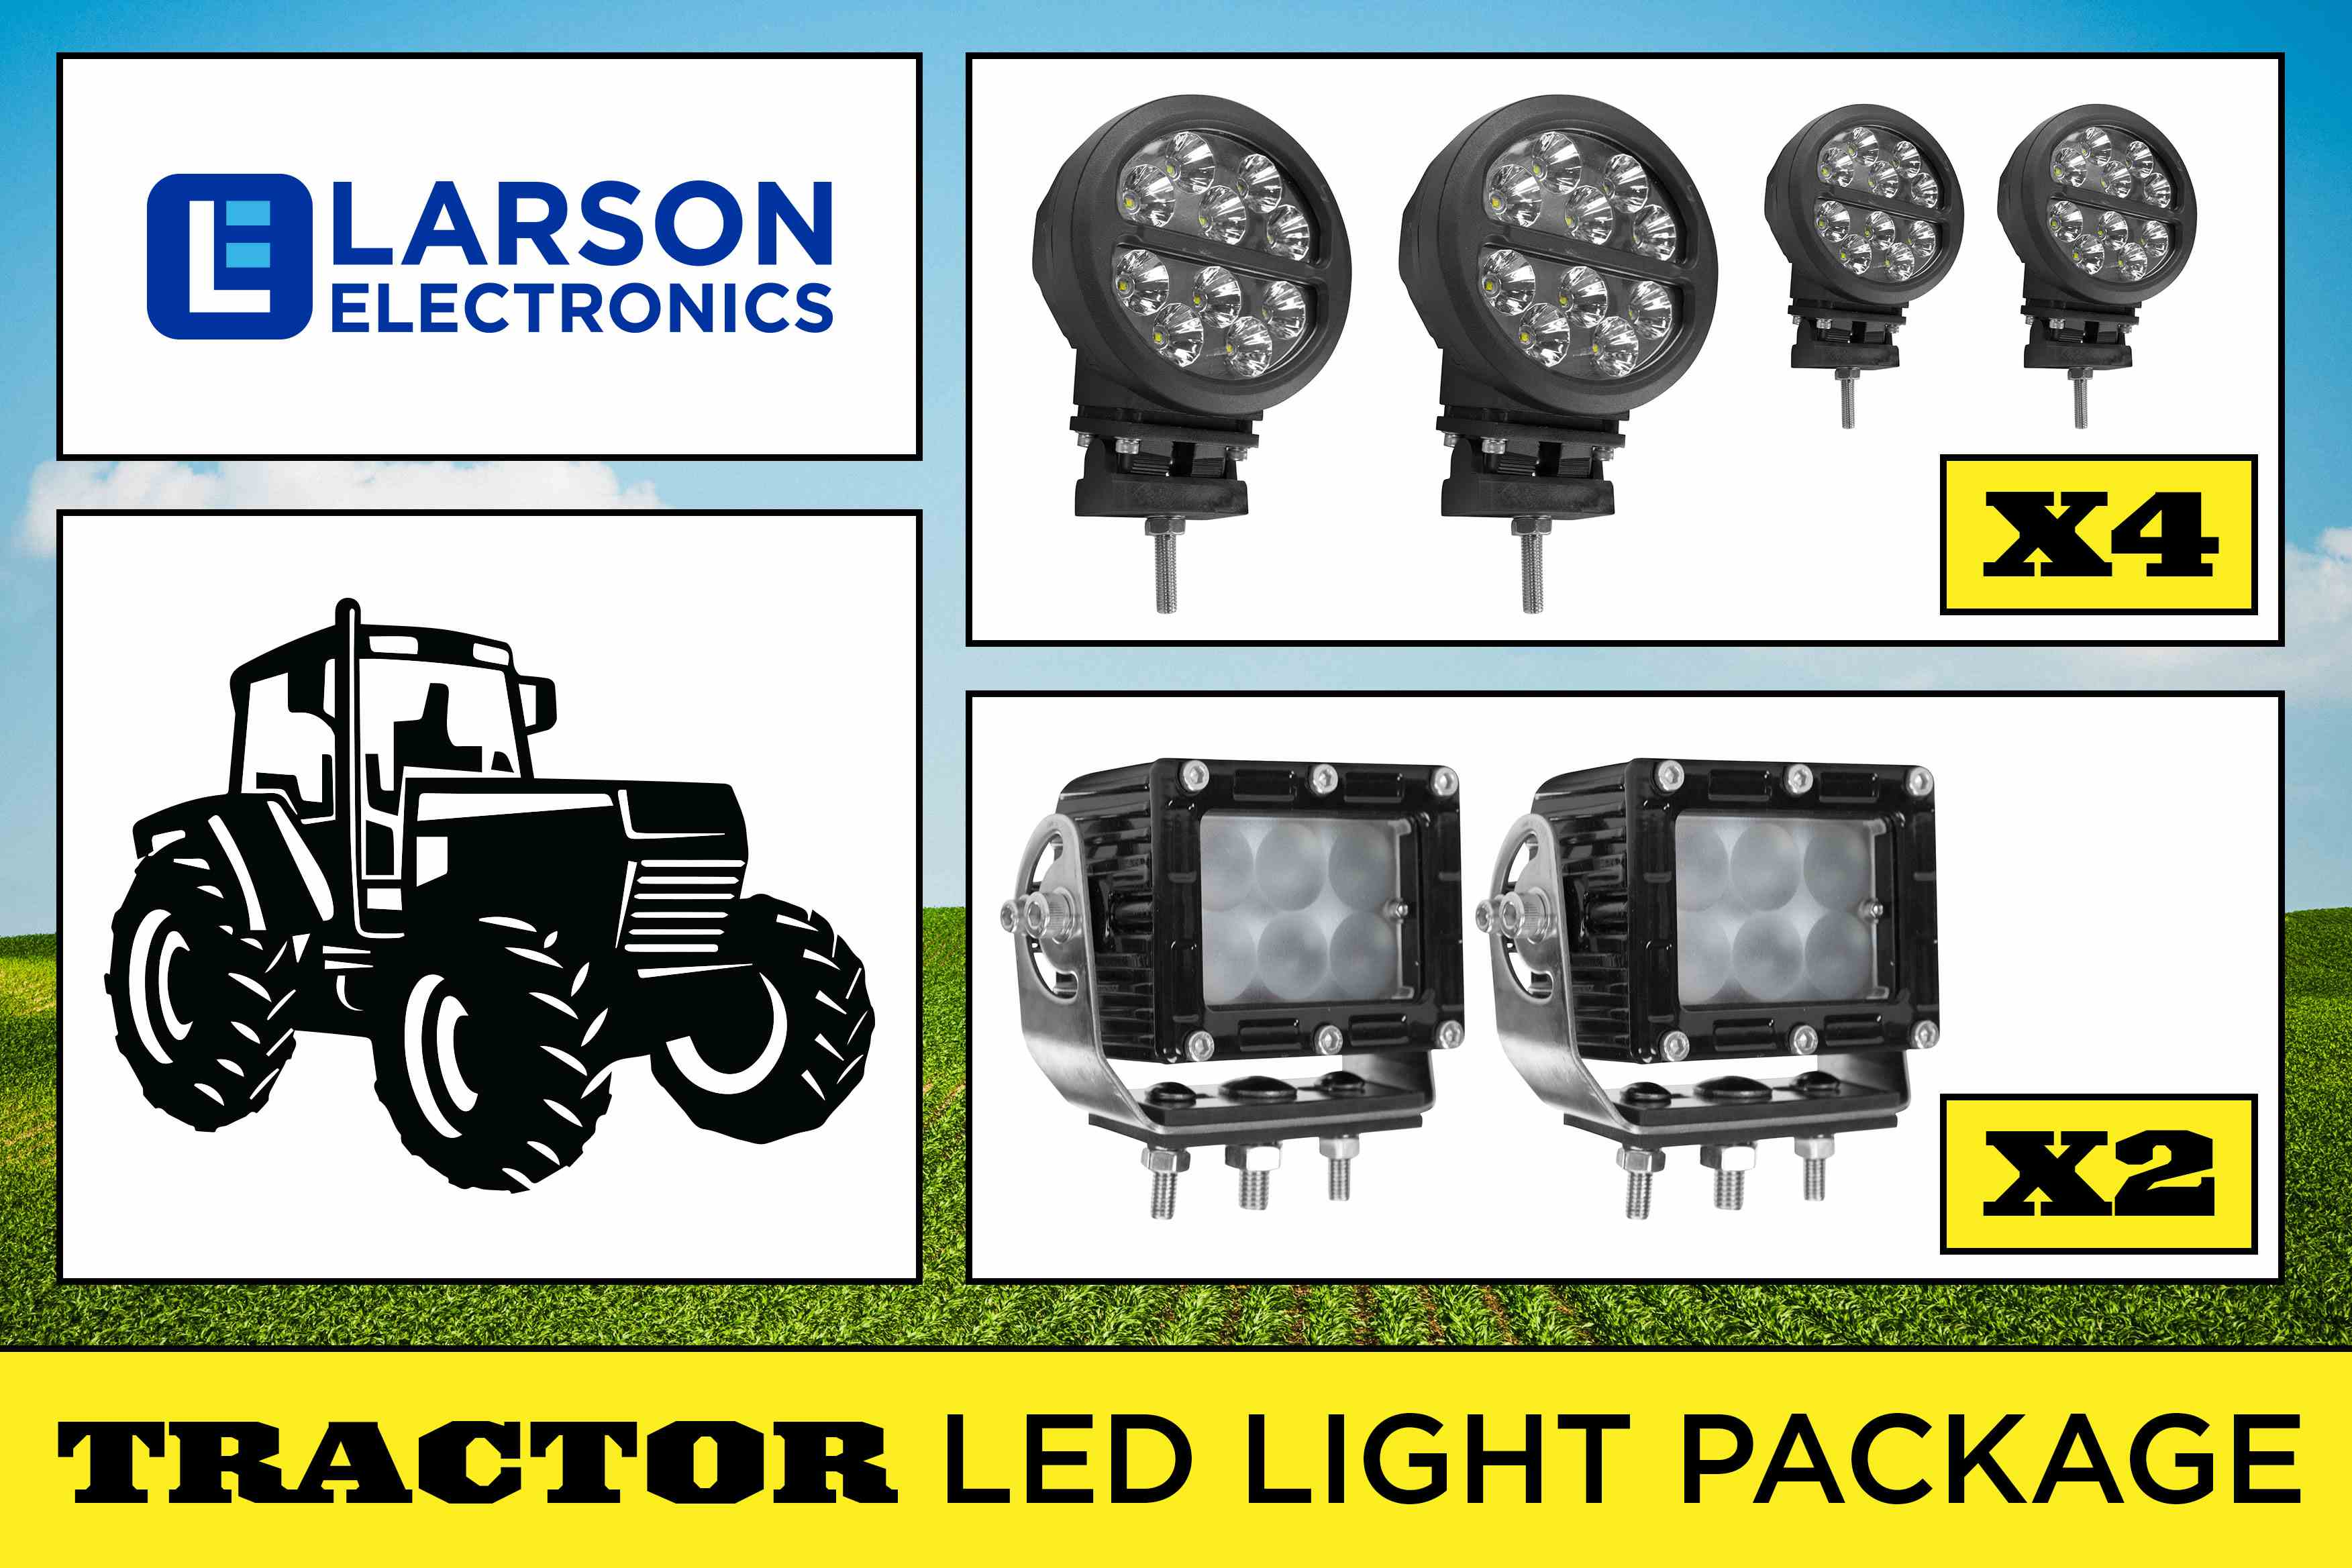 led light bar wiring with P 146312 Led Cab Light Upgrade Kit For John Deere 7230 Tractors 4 Ledlb 10r Cpr 2 Ledeq 3x2 Cpr on Dually Led Tailgate Lights 130513 moreover Light Wallpaper wallpaper Pc Flower Wallpaper Poseidon Wallpaper Wallpapers For 6 moreover Installing Electrical 21 Things You Need as well 1031 Hella besides Jeep Tj Light Bar.